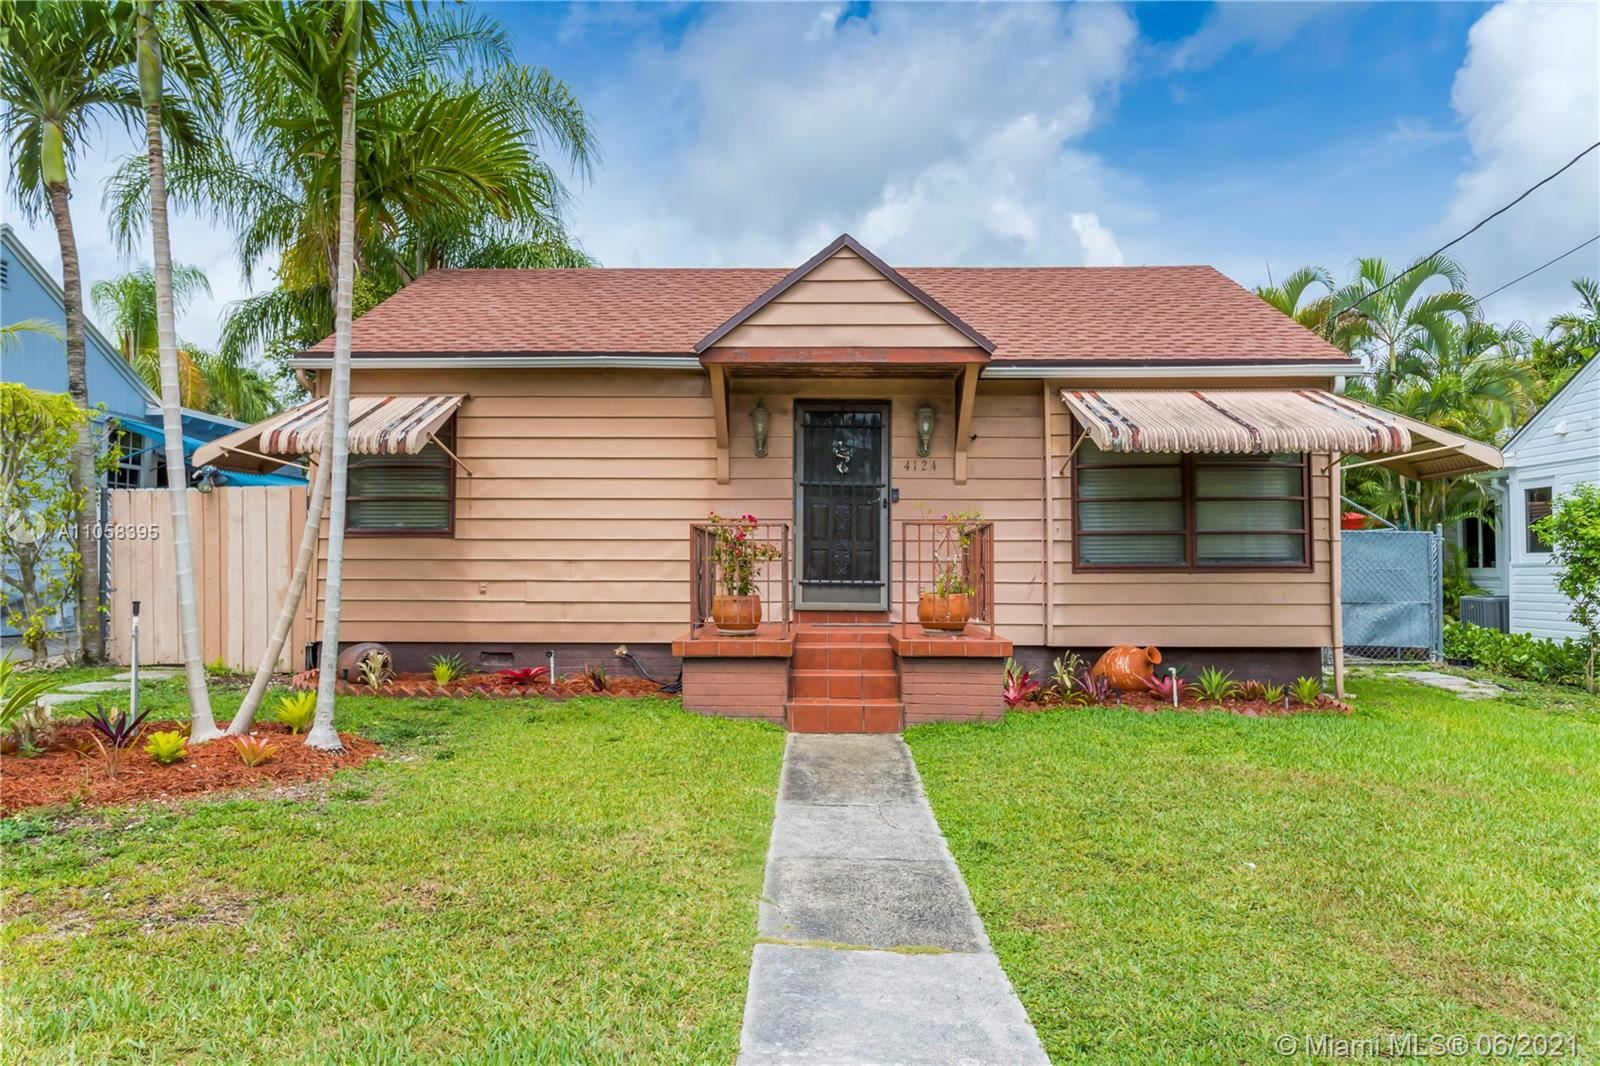 4124 SW 62nd Ave, South Miami, FL 33155 - #: A11058395